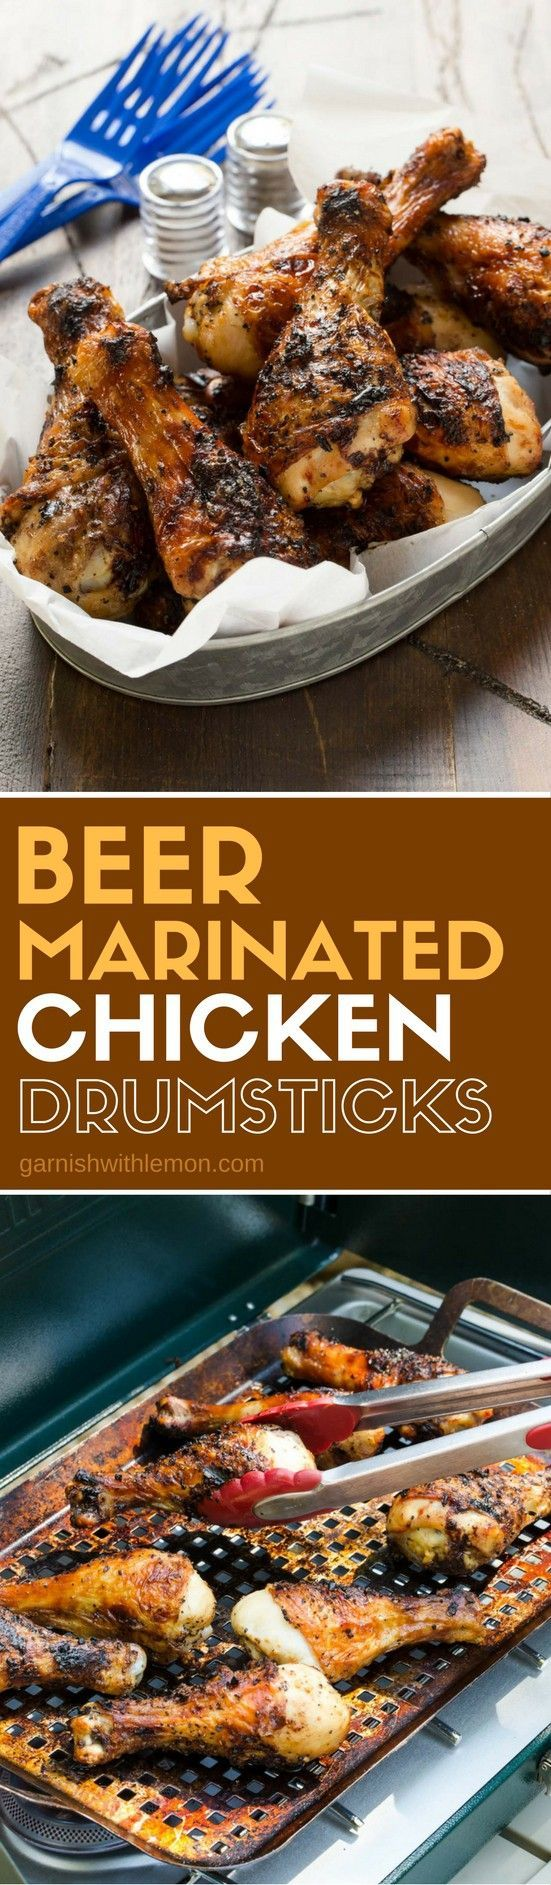 Beer Marinated Chicken Drumsticks are just what your tailgate needs to go from good to great! A quick soak in this flavorful marinade gives your chicken a juicy taste that can't be beat!